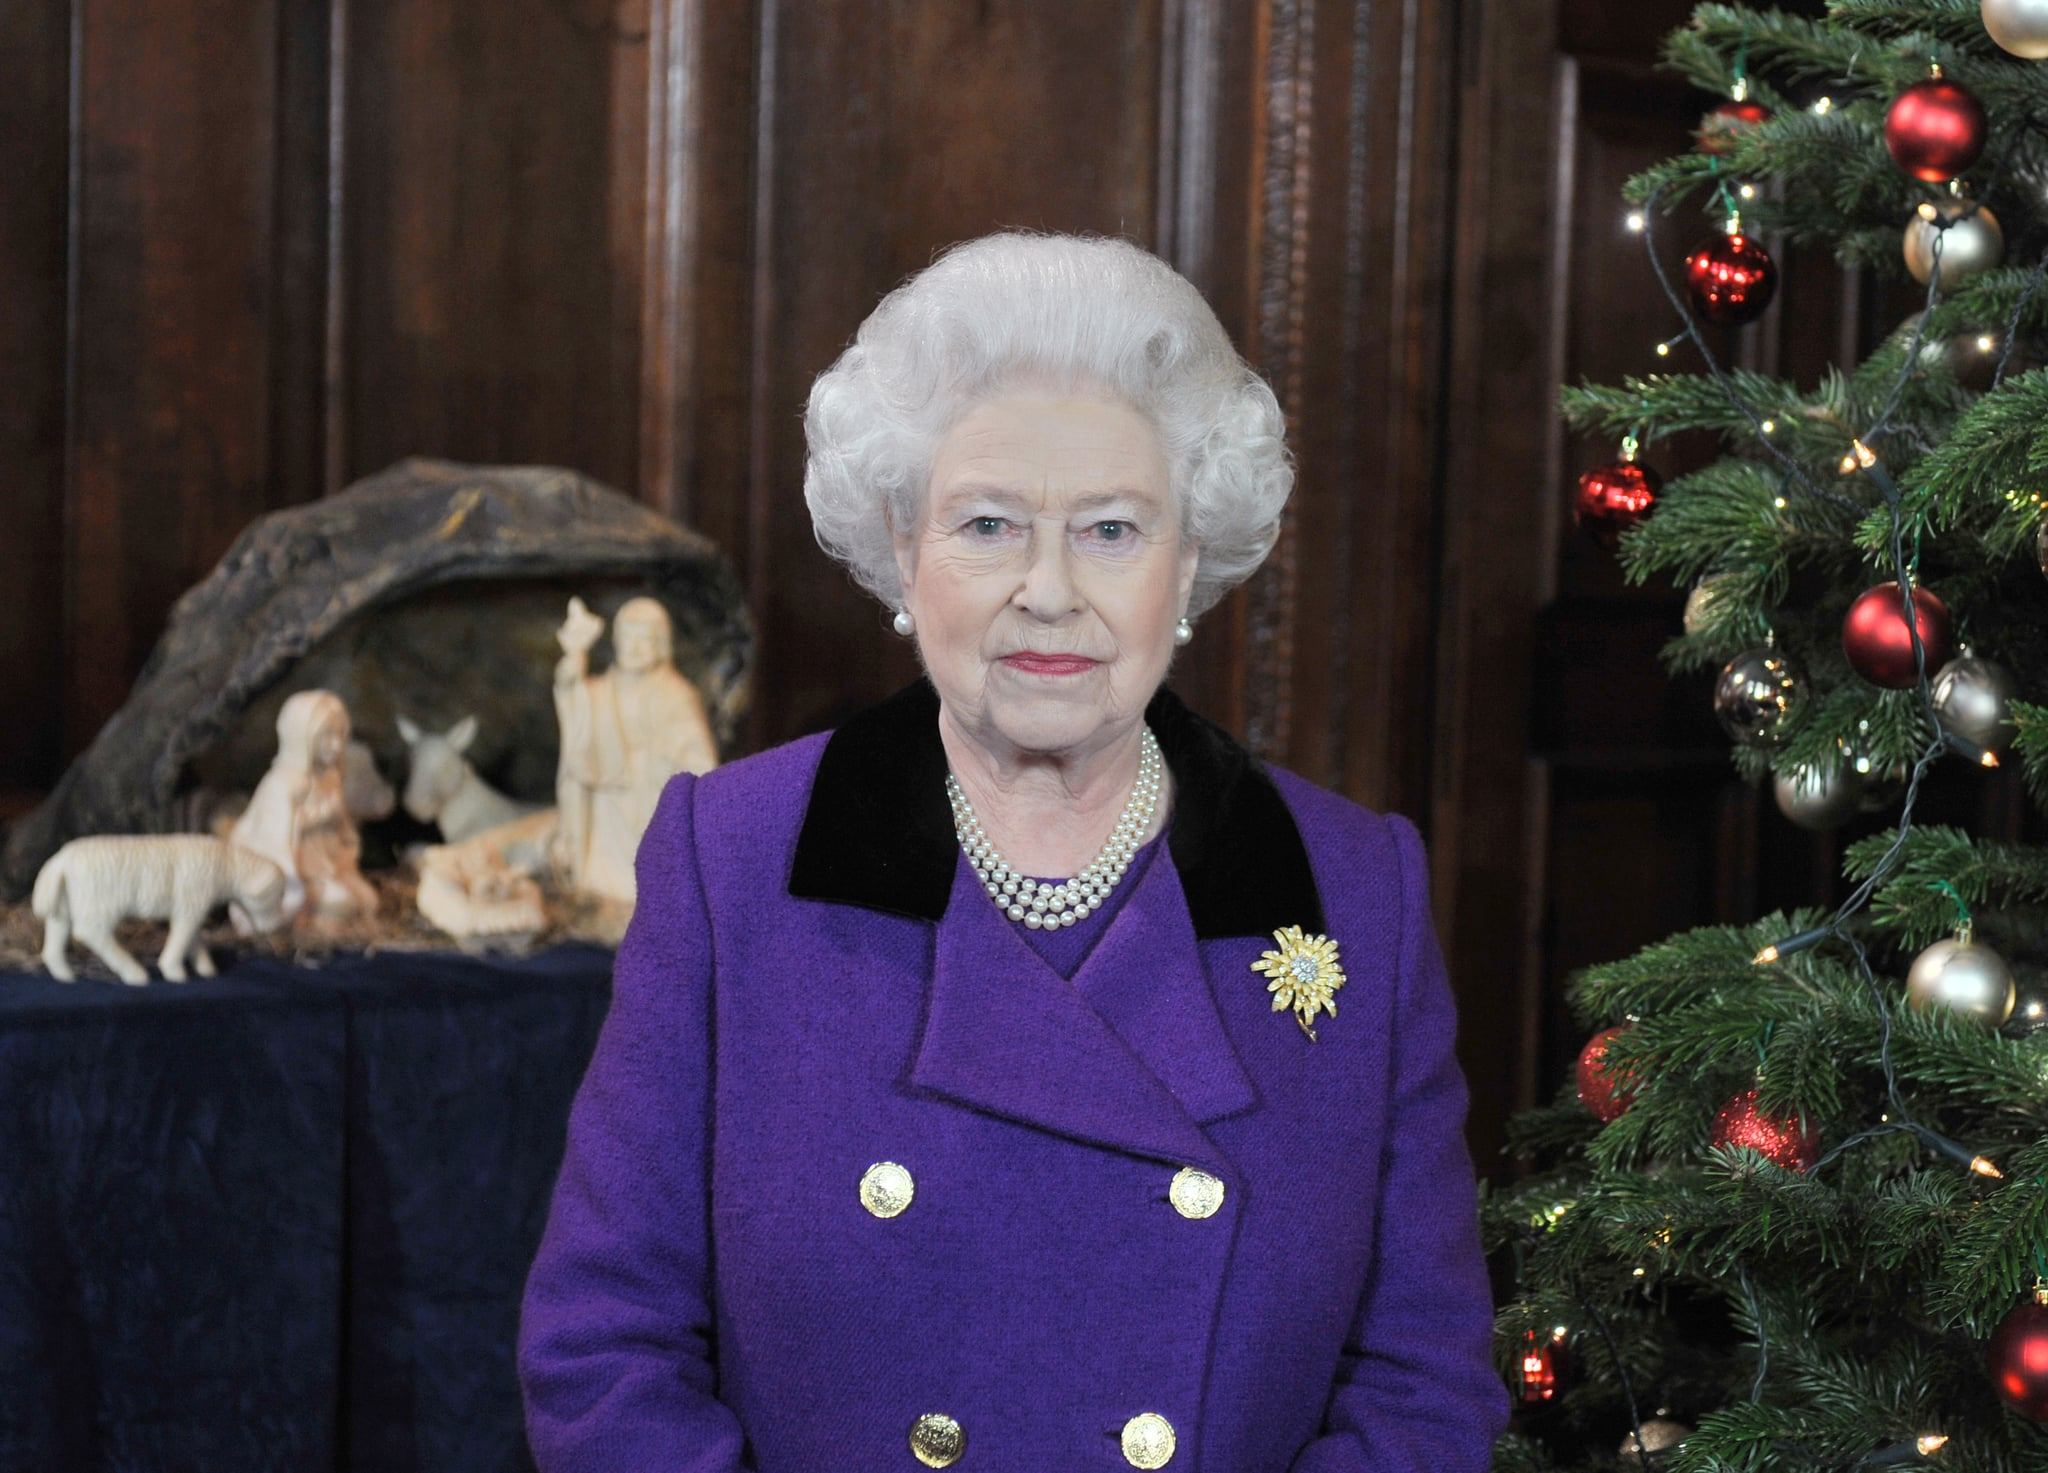 Queen elizabeth ii posed for pictures ahead of recording